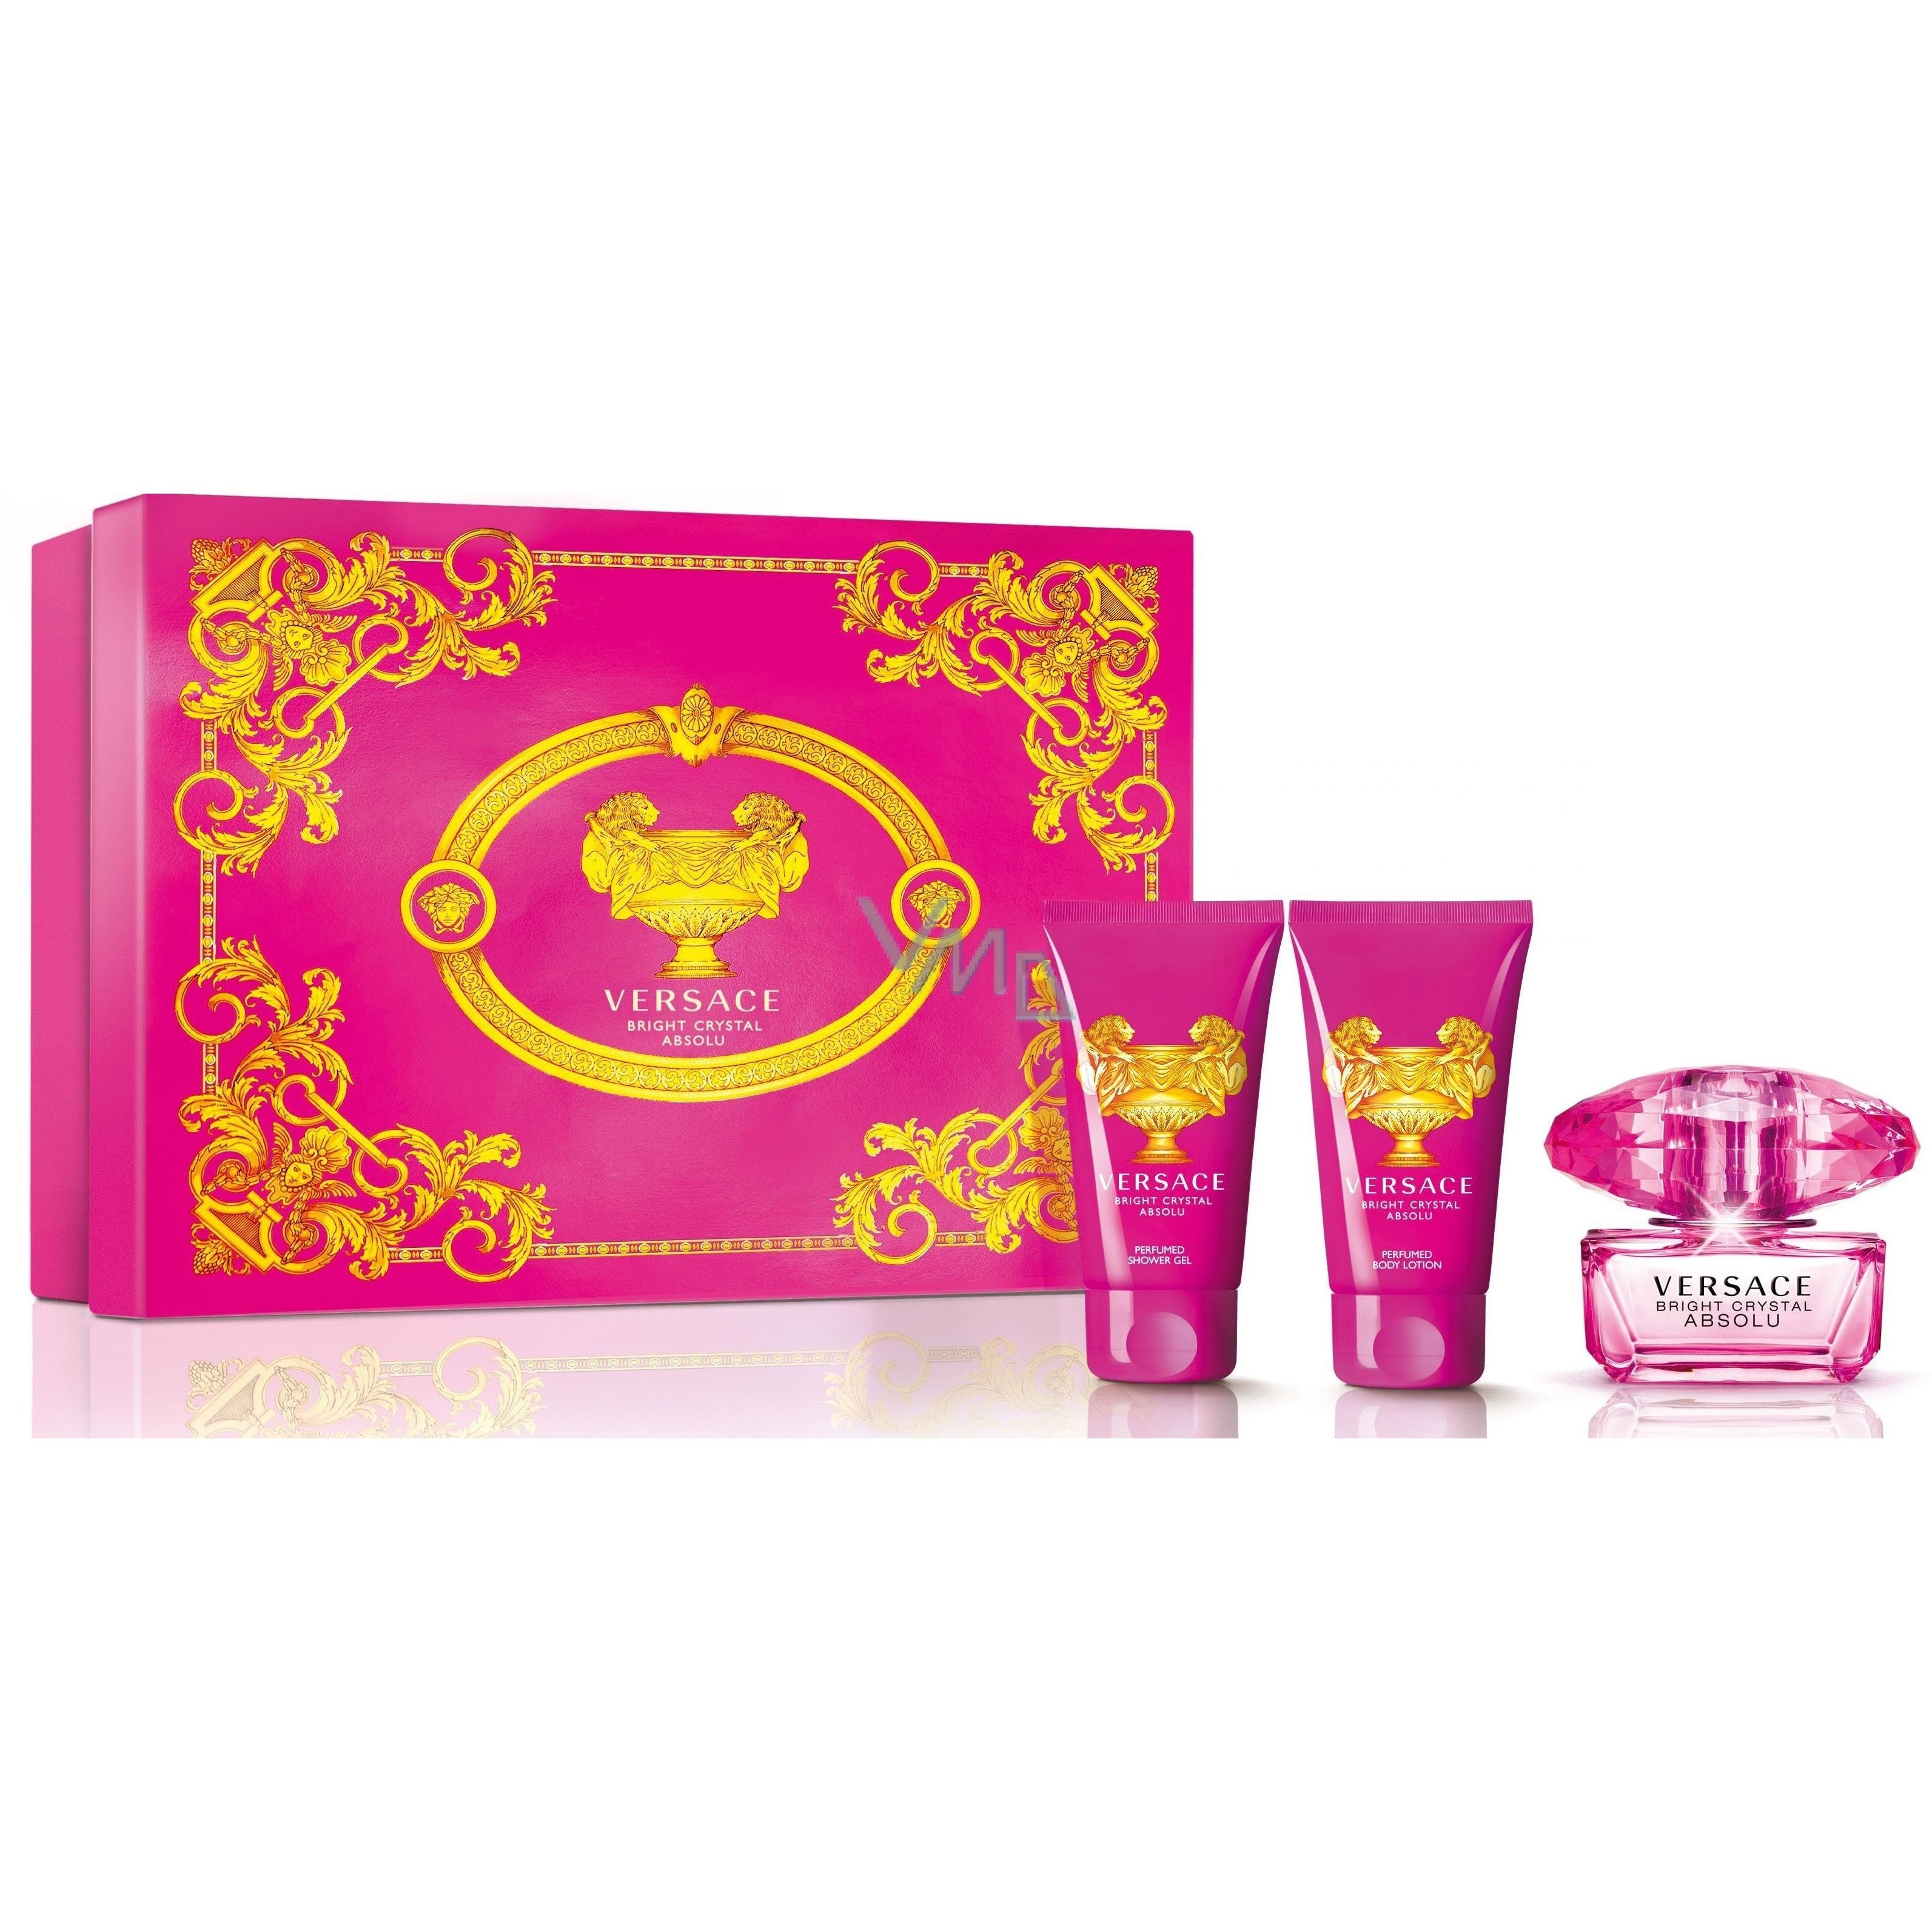 CRYSTAL ABSOLU 3PC (50ml)